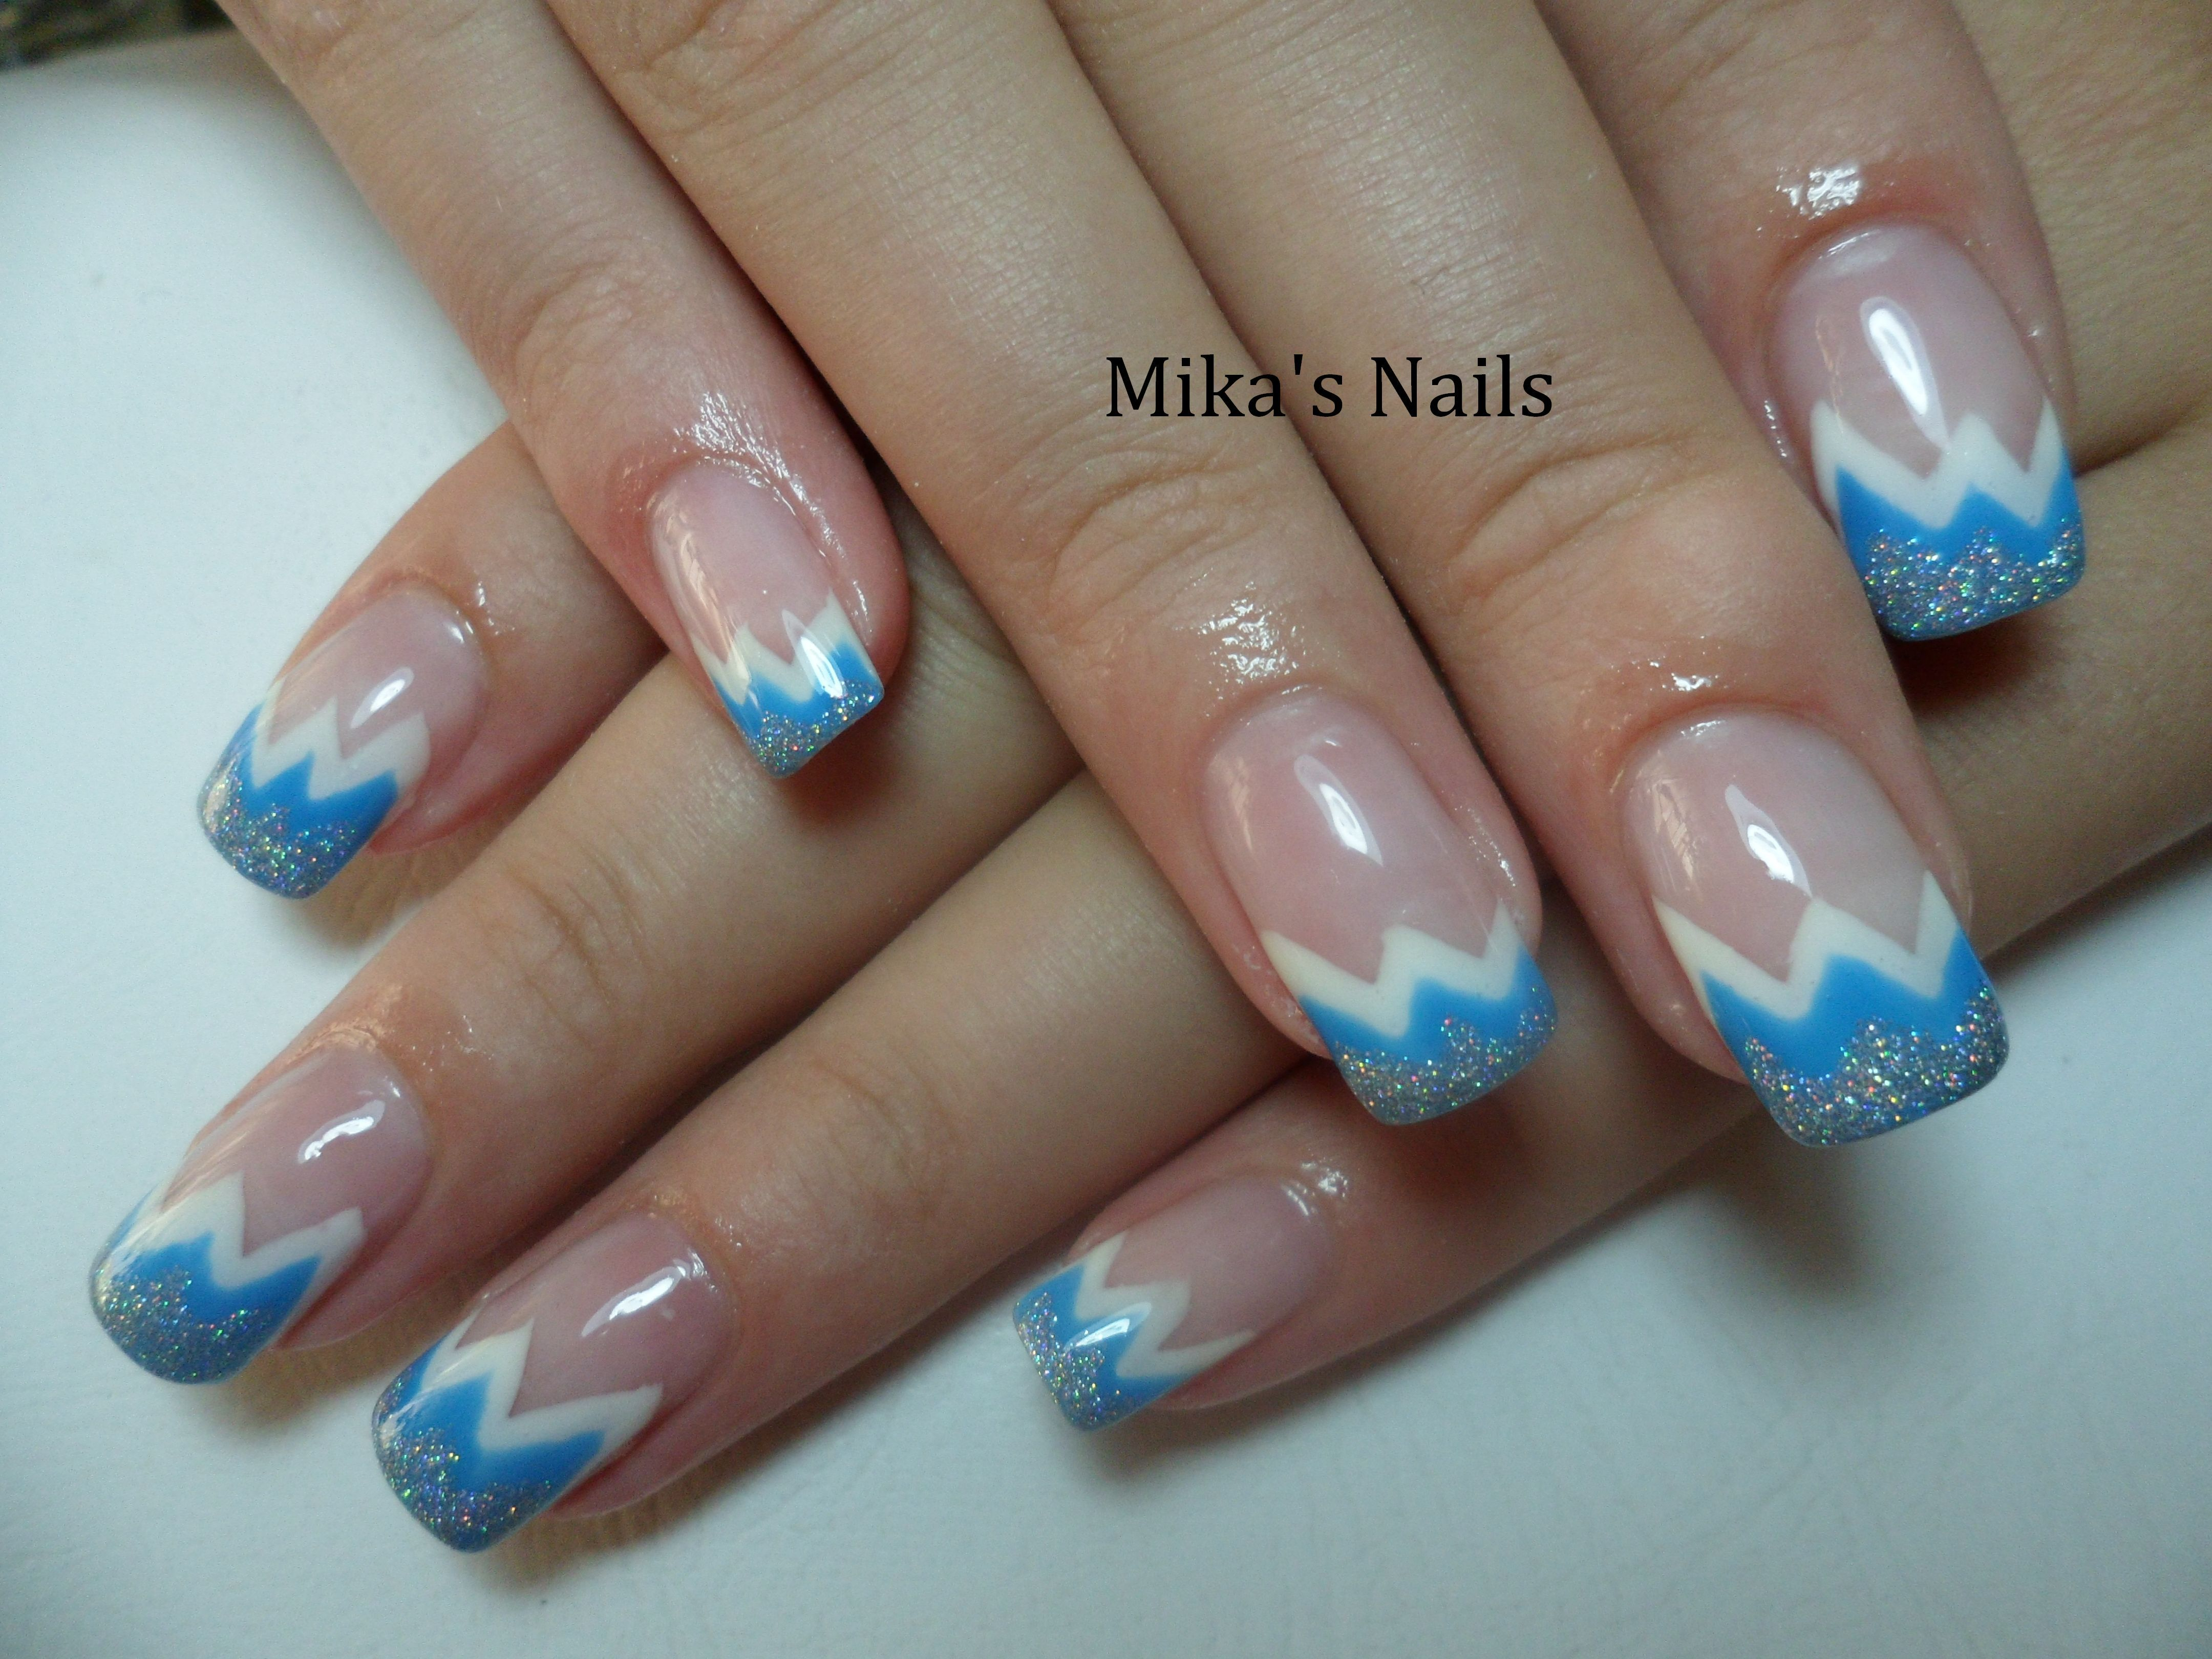 Unghii cu gel gel nails nails art uv gel nails nails unghii cu gel gel nails nails art uv gel nails prinsesfo Image collections